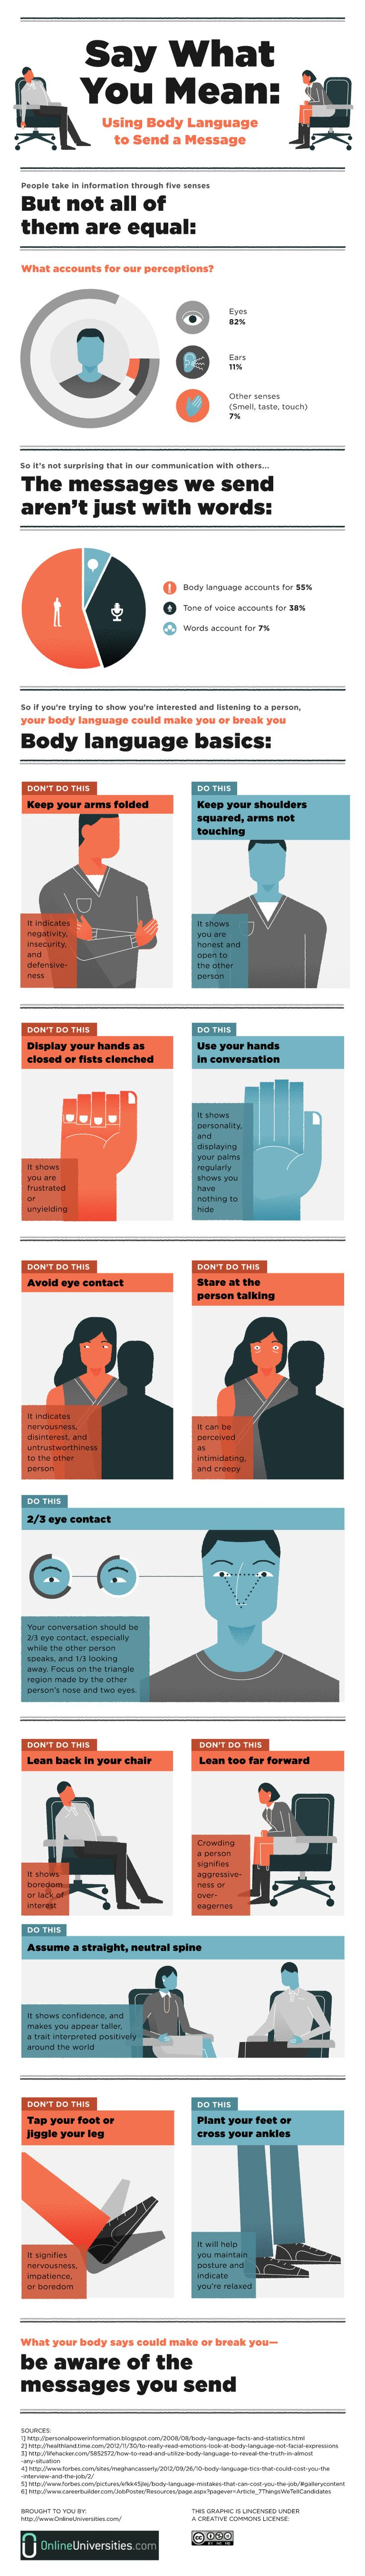 7 Surprising Things Your Body Language Says About You - PositiveMed